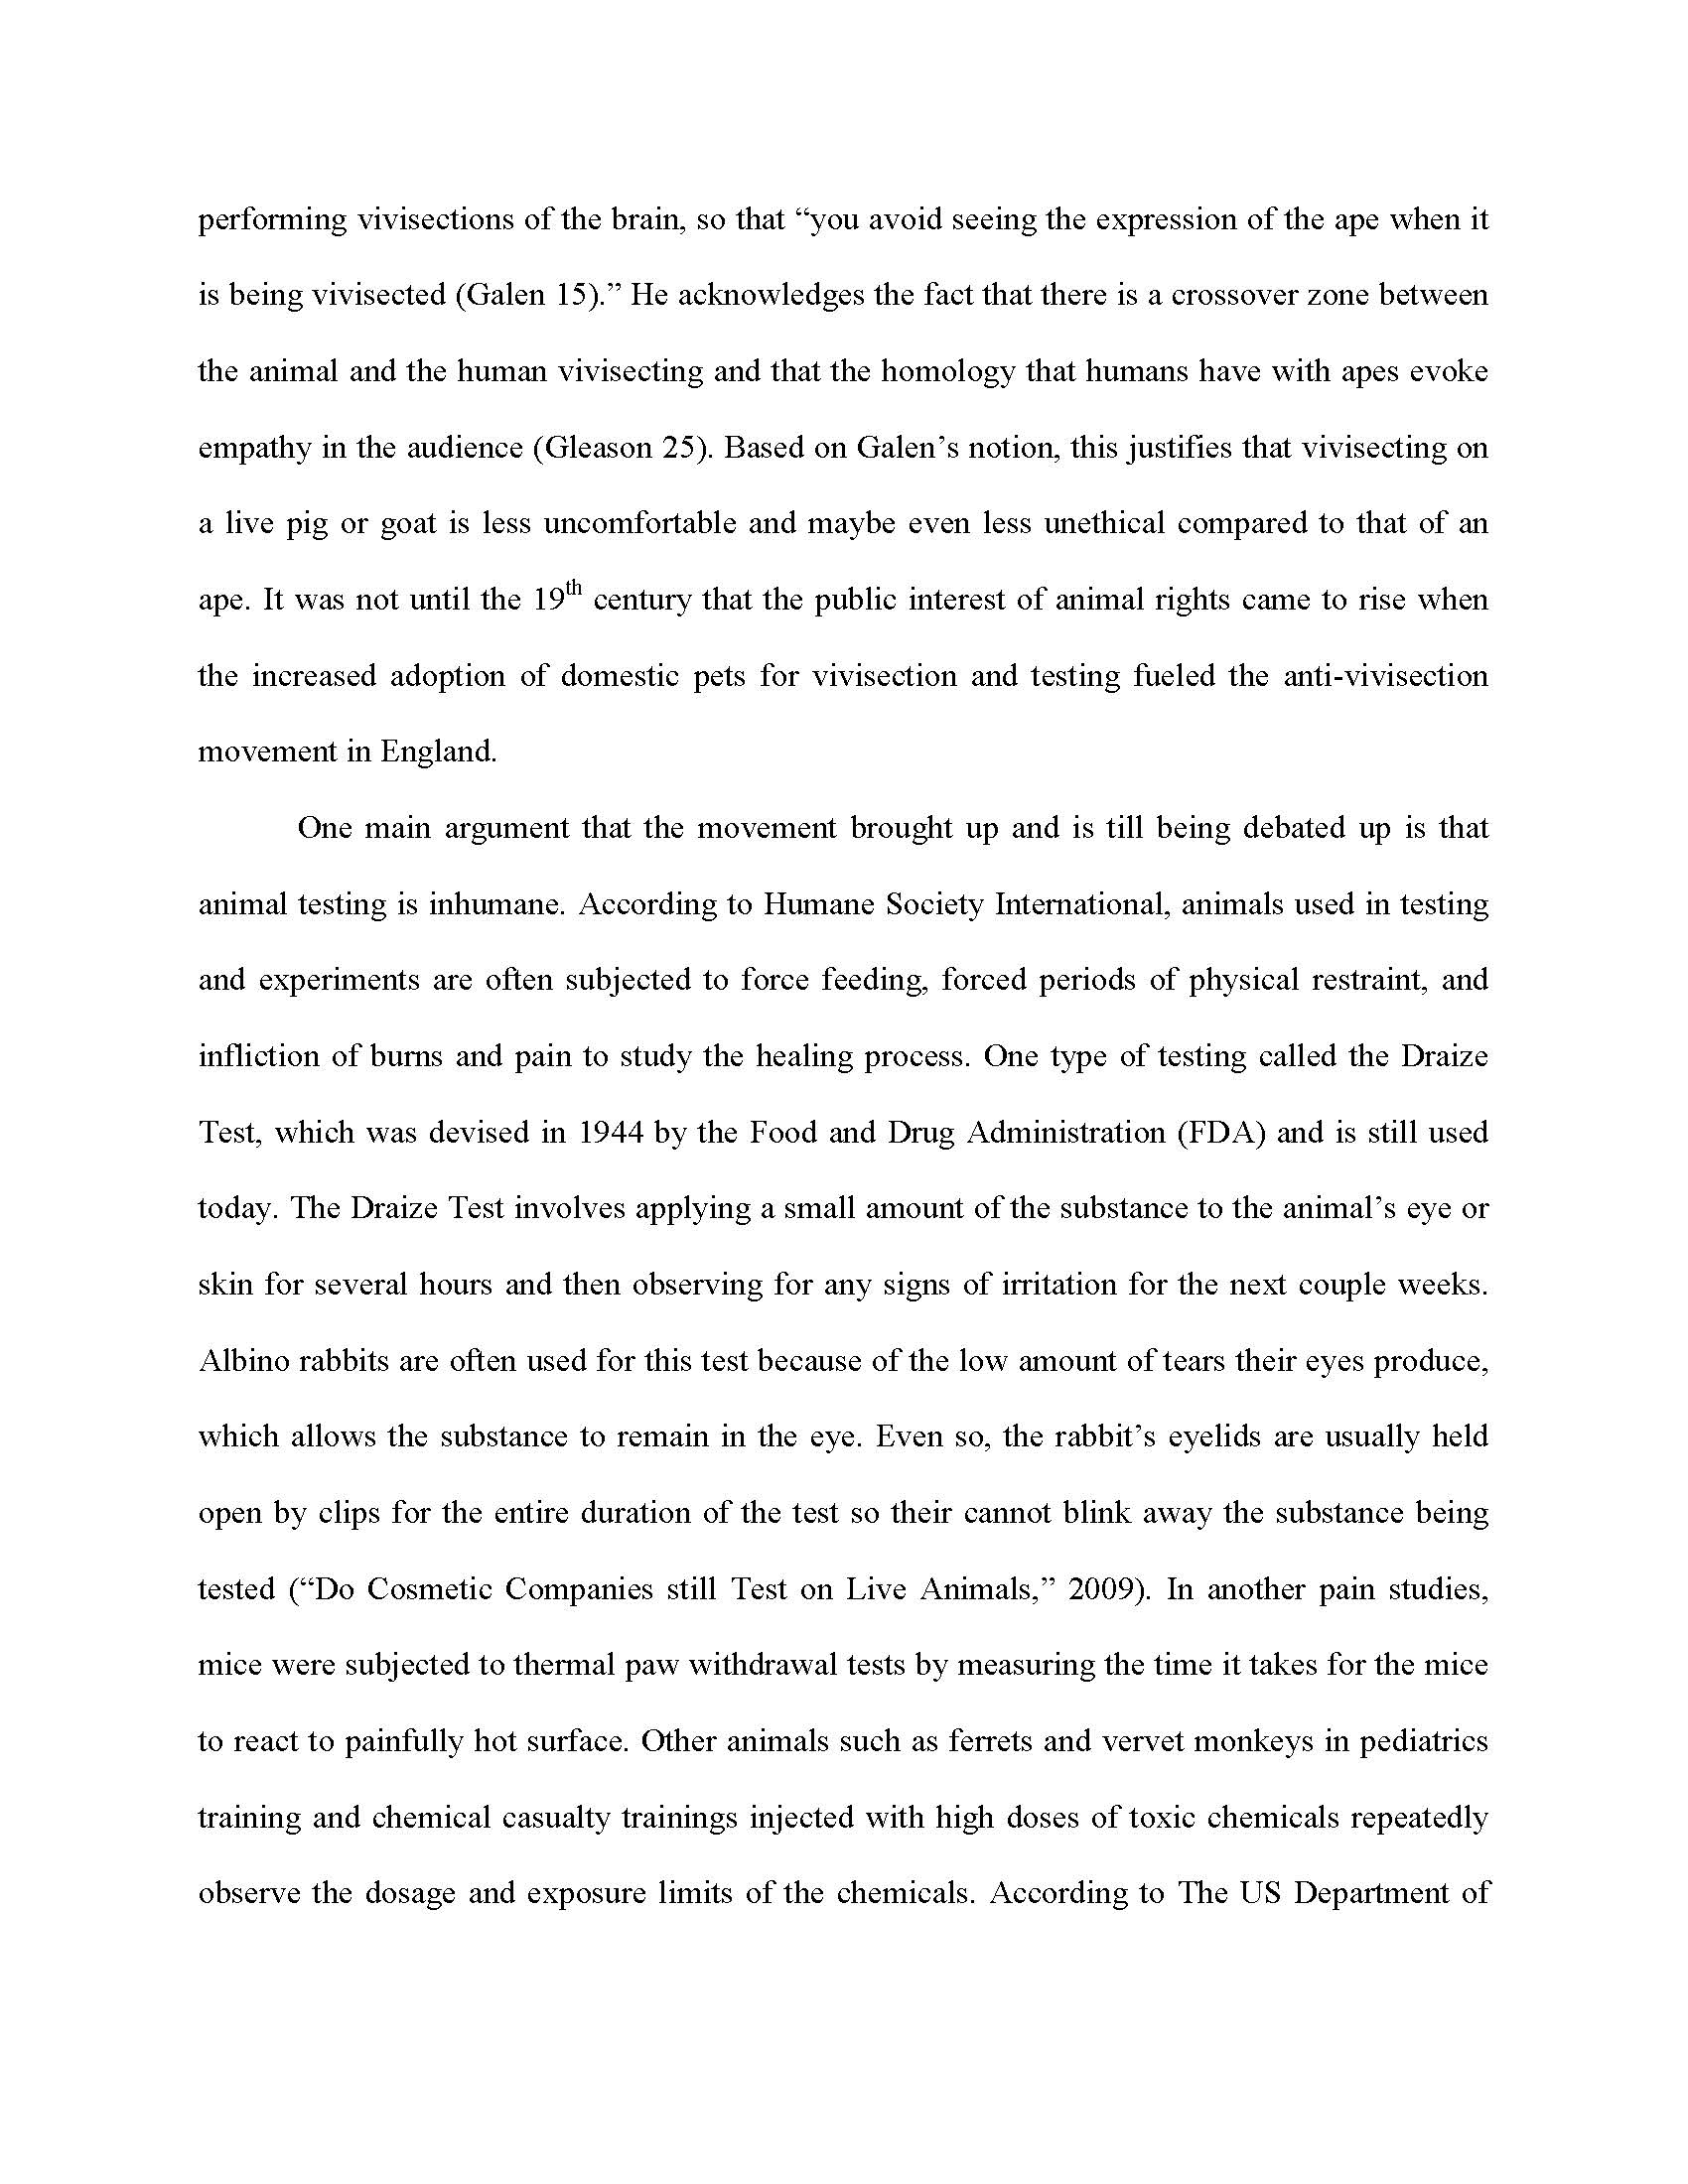 006 Research Paper Animal Testing Argumentative Essay Title Titles Outline Cosmetic Unique Experimentation Questions Full